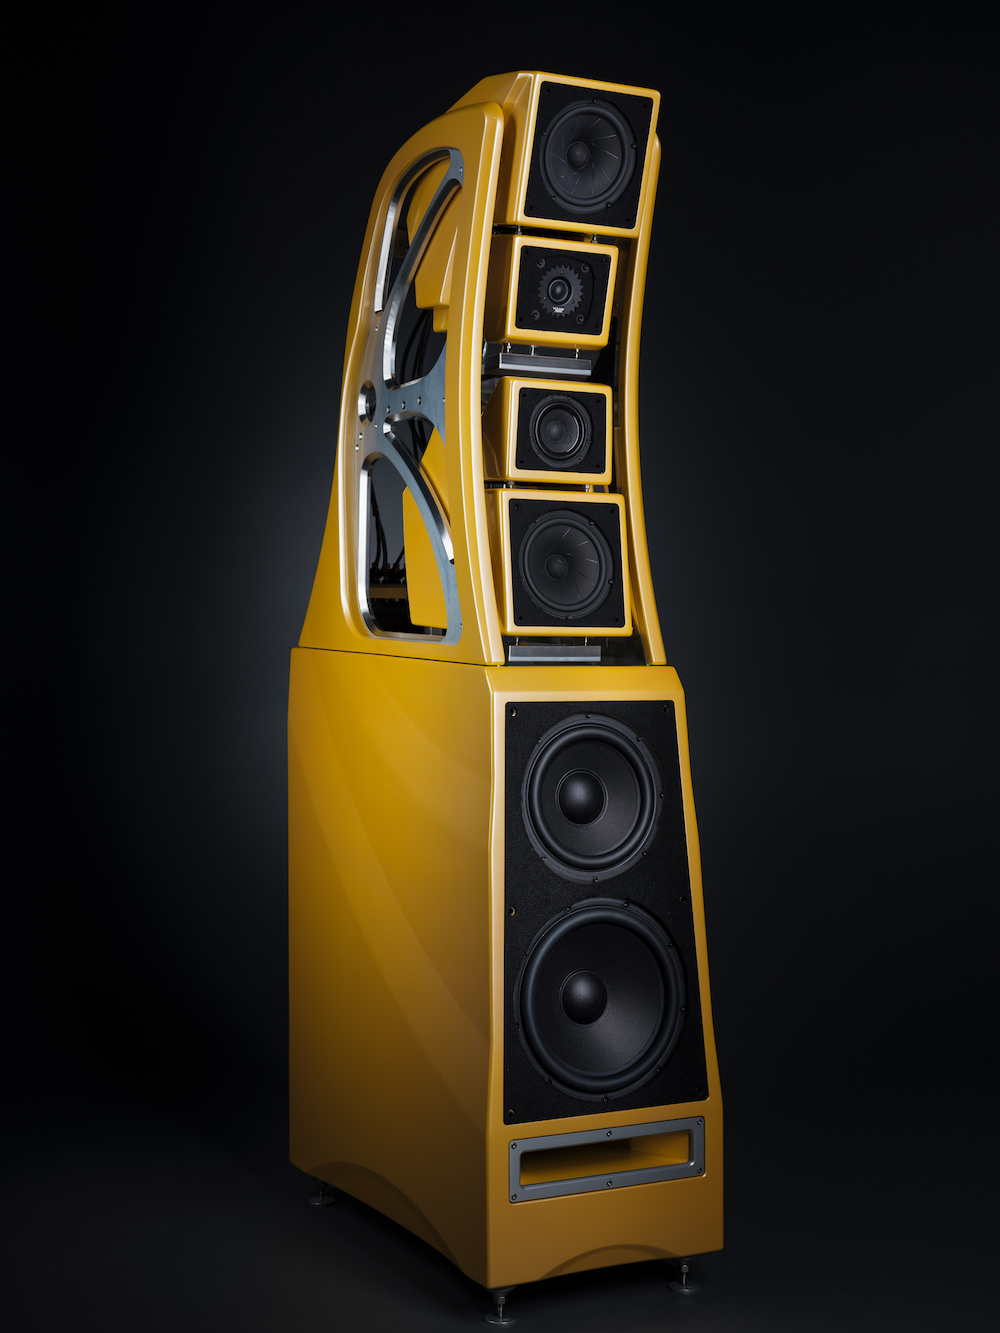 Wilson Audio Chronosonic XVX Loudspeakers in Saffron Pearl Cove (Yellow) Without Grille